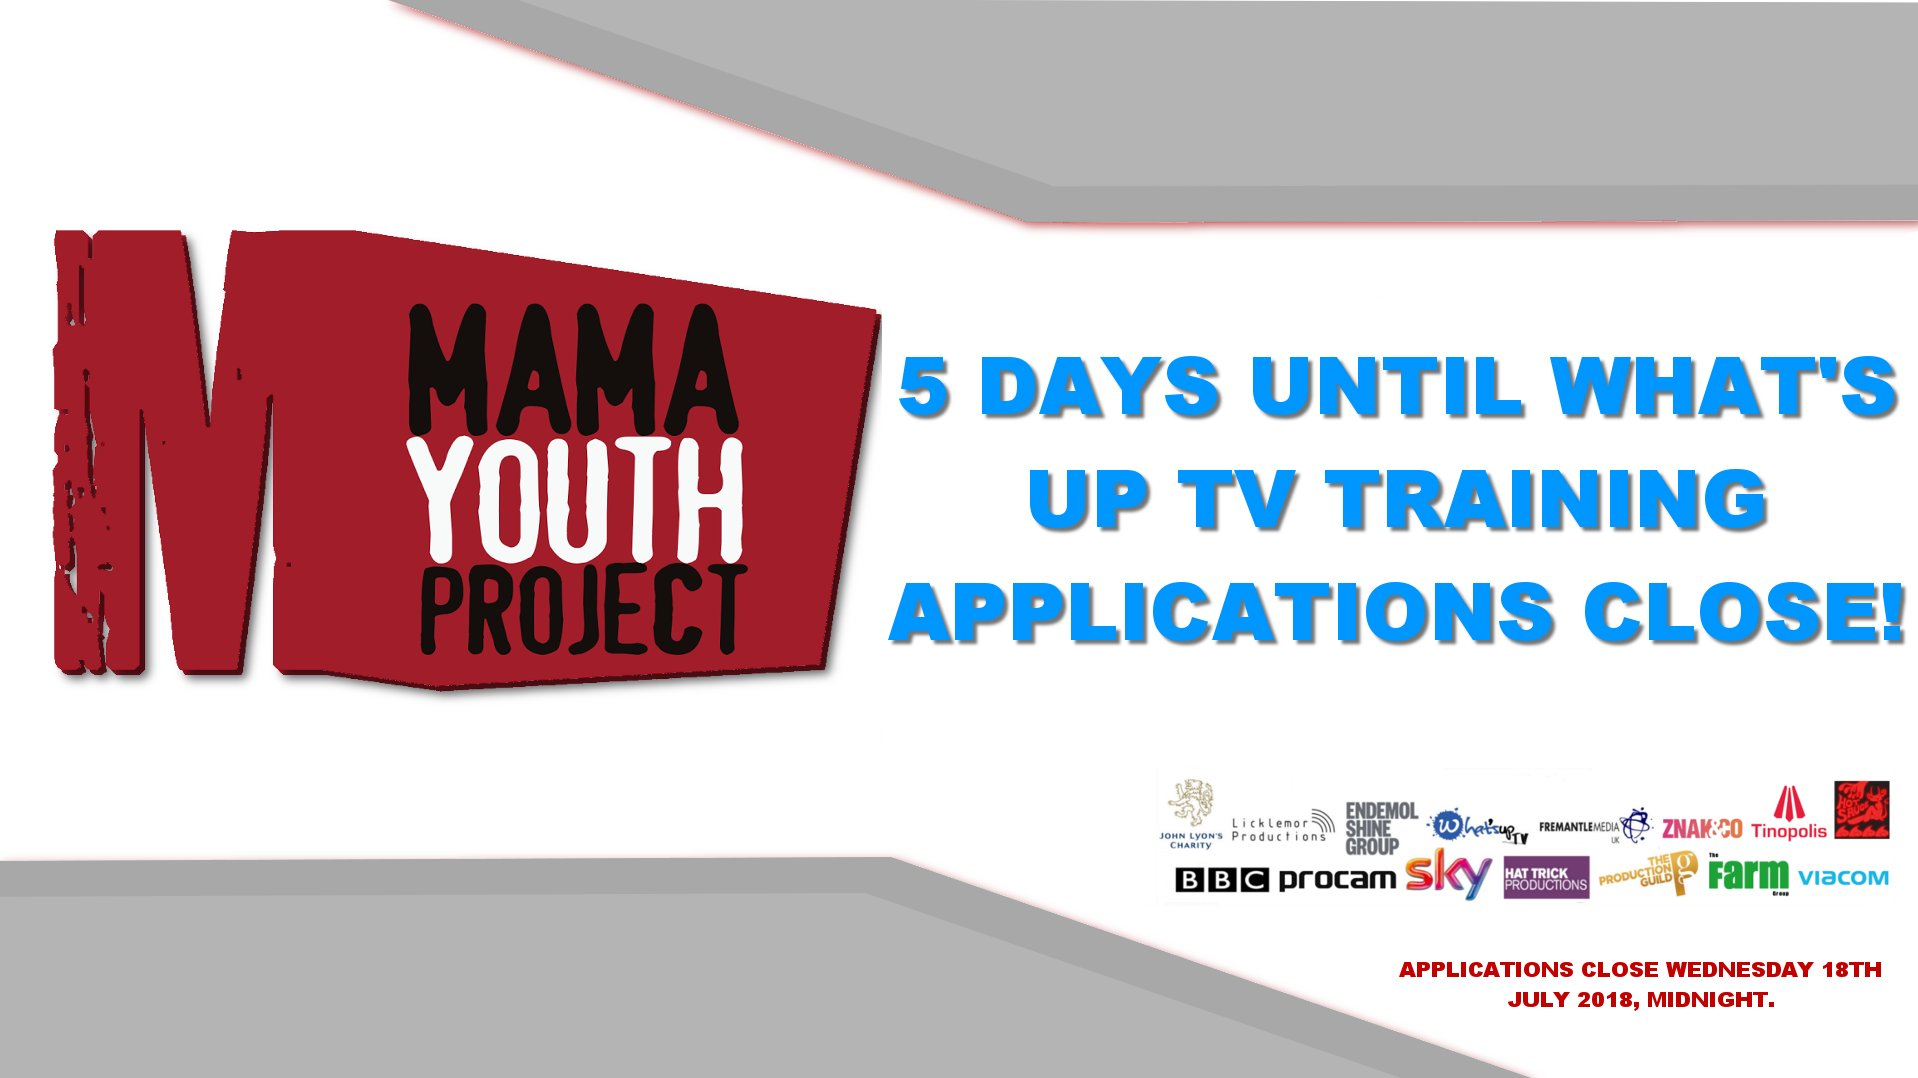 MAMA Youth Project on Twitter: